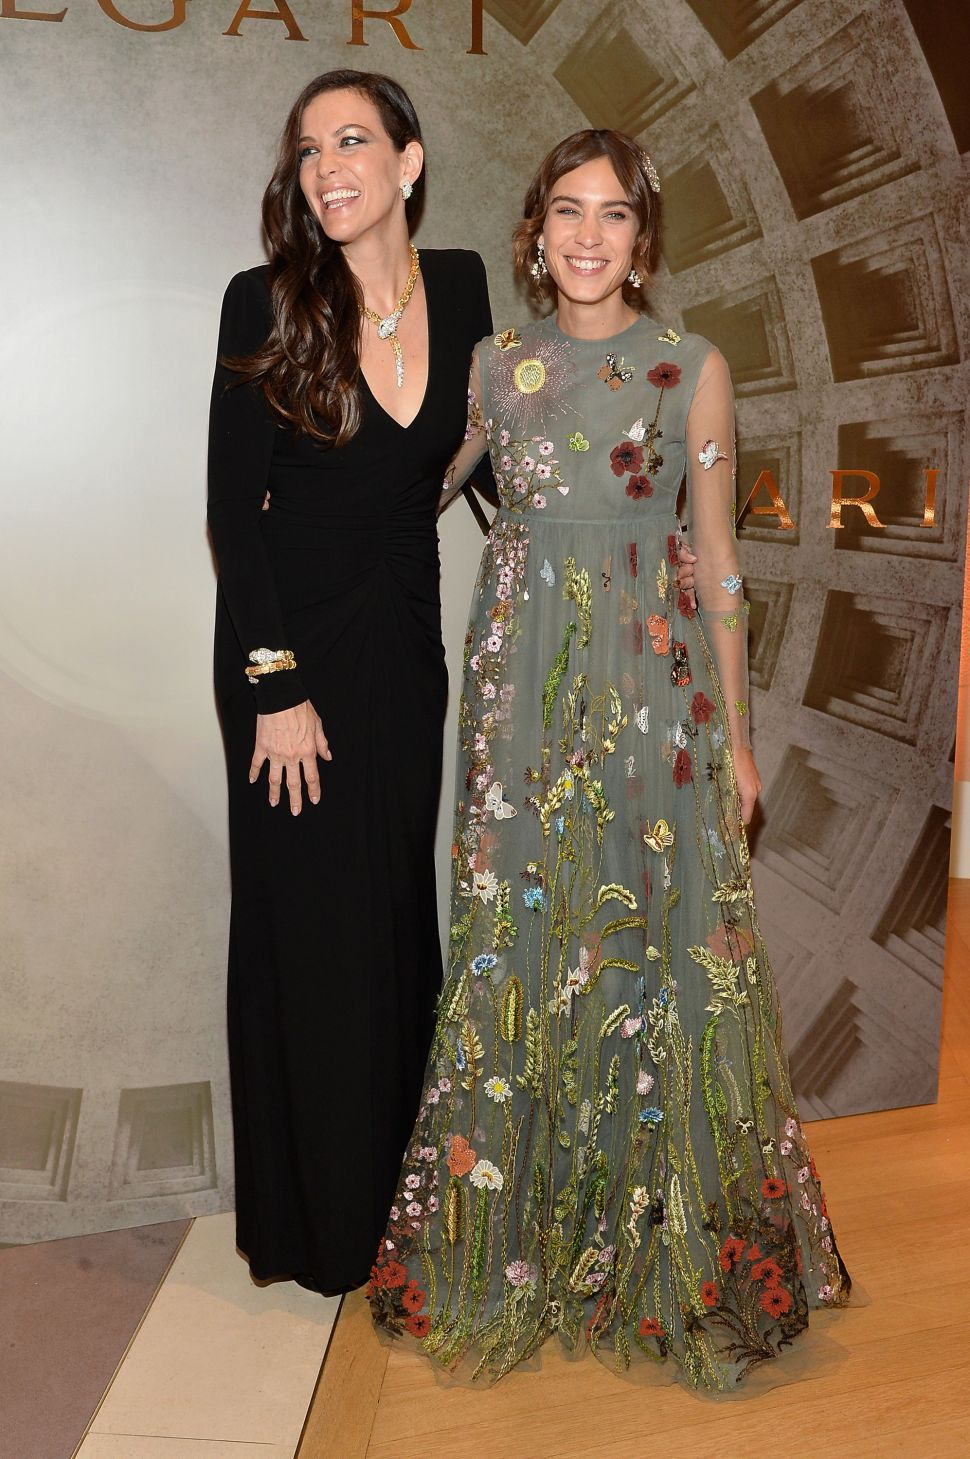 Embellished Roman Garb Was the Dress Code at Bulgari's Lavish Dinner Party